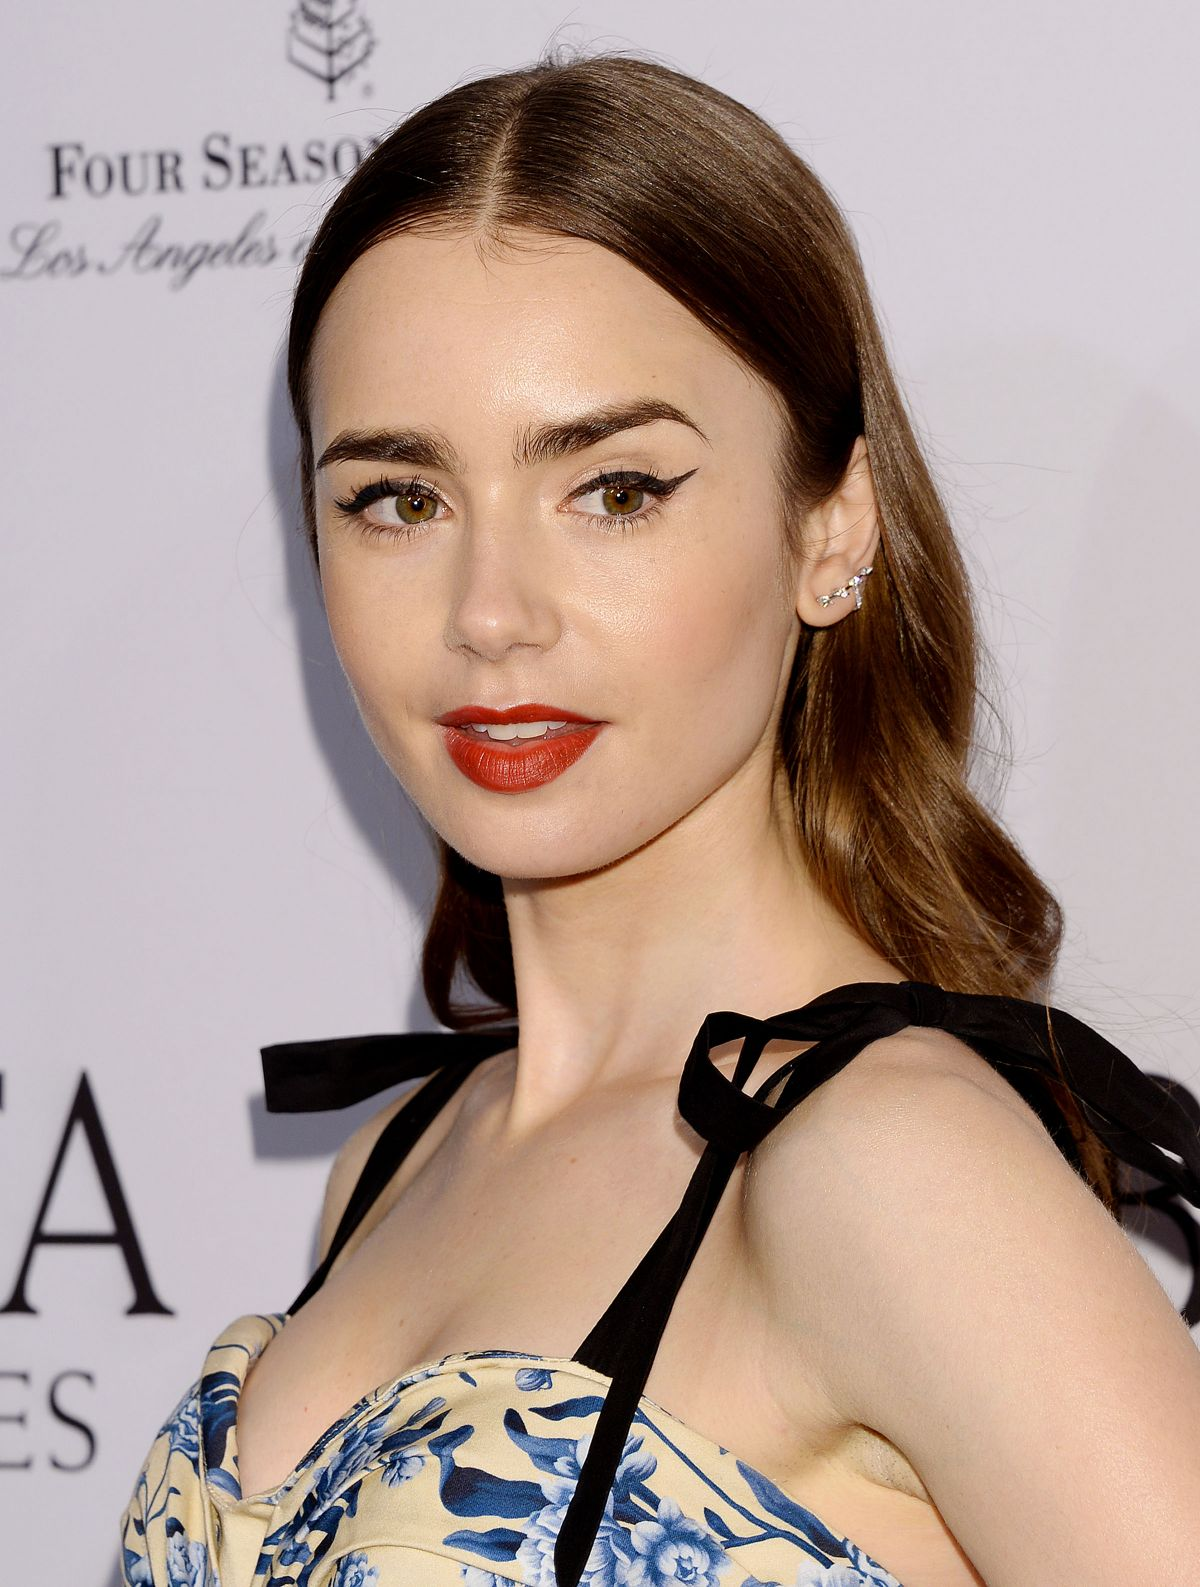 lily-collins-at-bafta-tea-party-in-los-angeles-01-05-2019-7.jpg